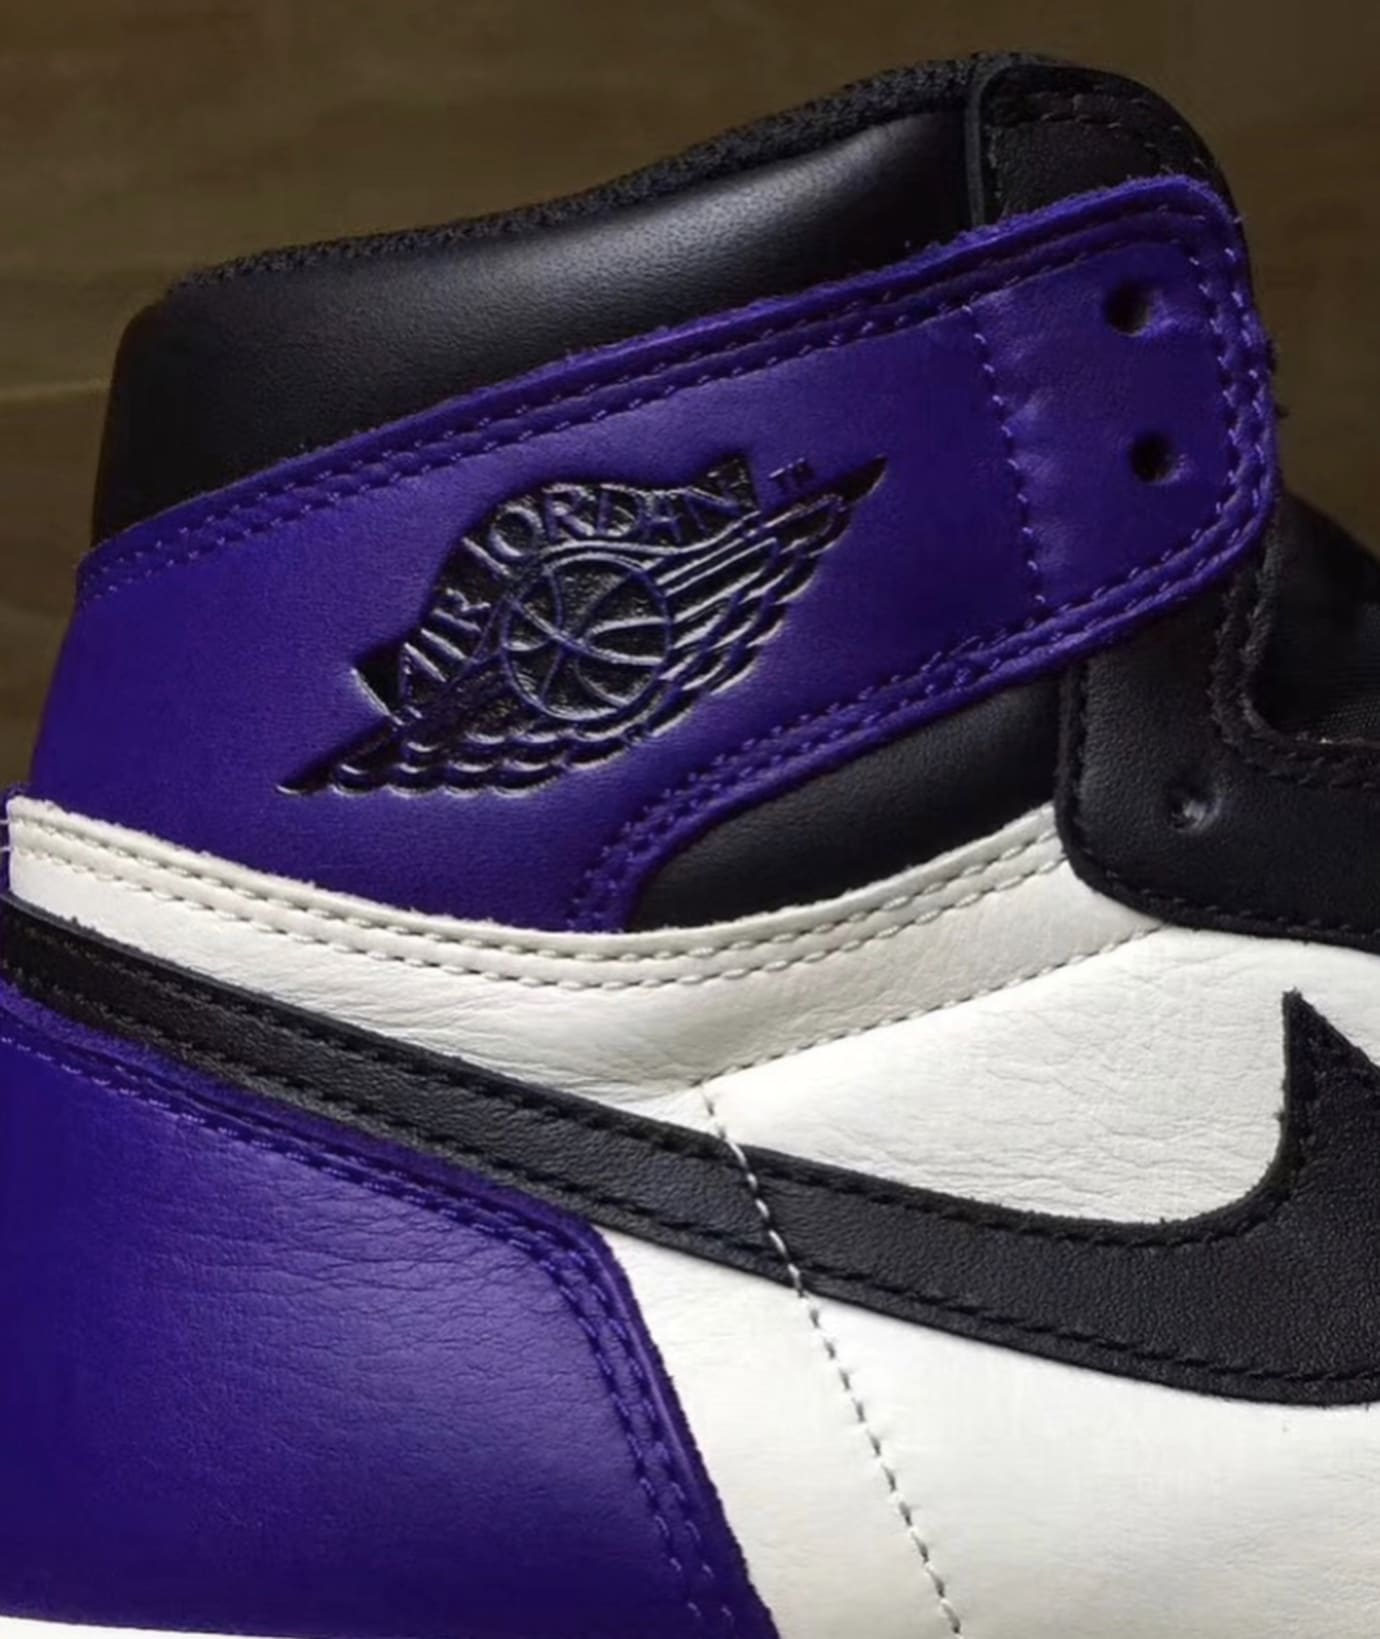 Air Jordan 1 'Court Purple' 4